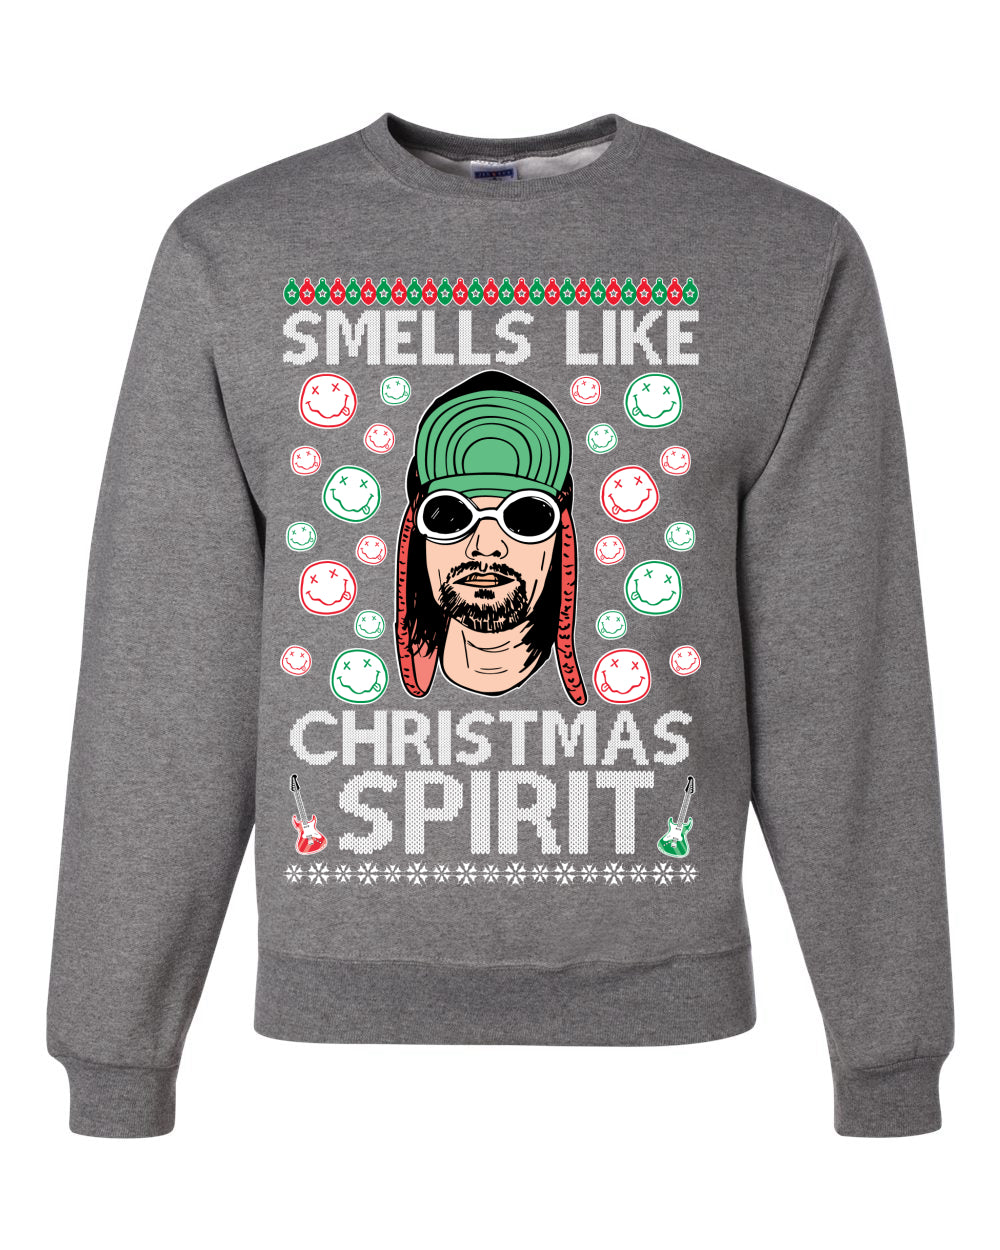 Smells Like Christmas Spirit Ugly Christmas Sweater Christmas Unisex Crewneck Graphic Sweatshirt